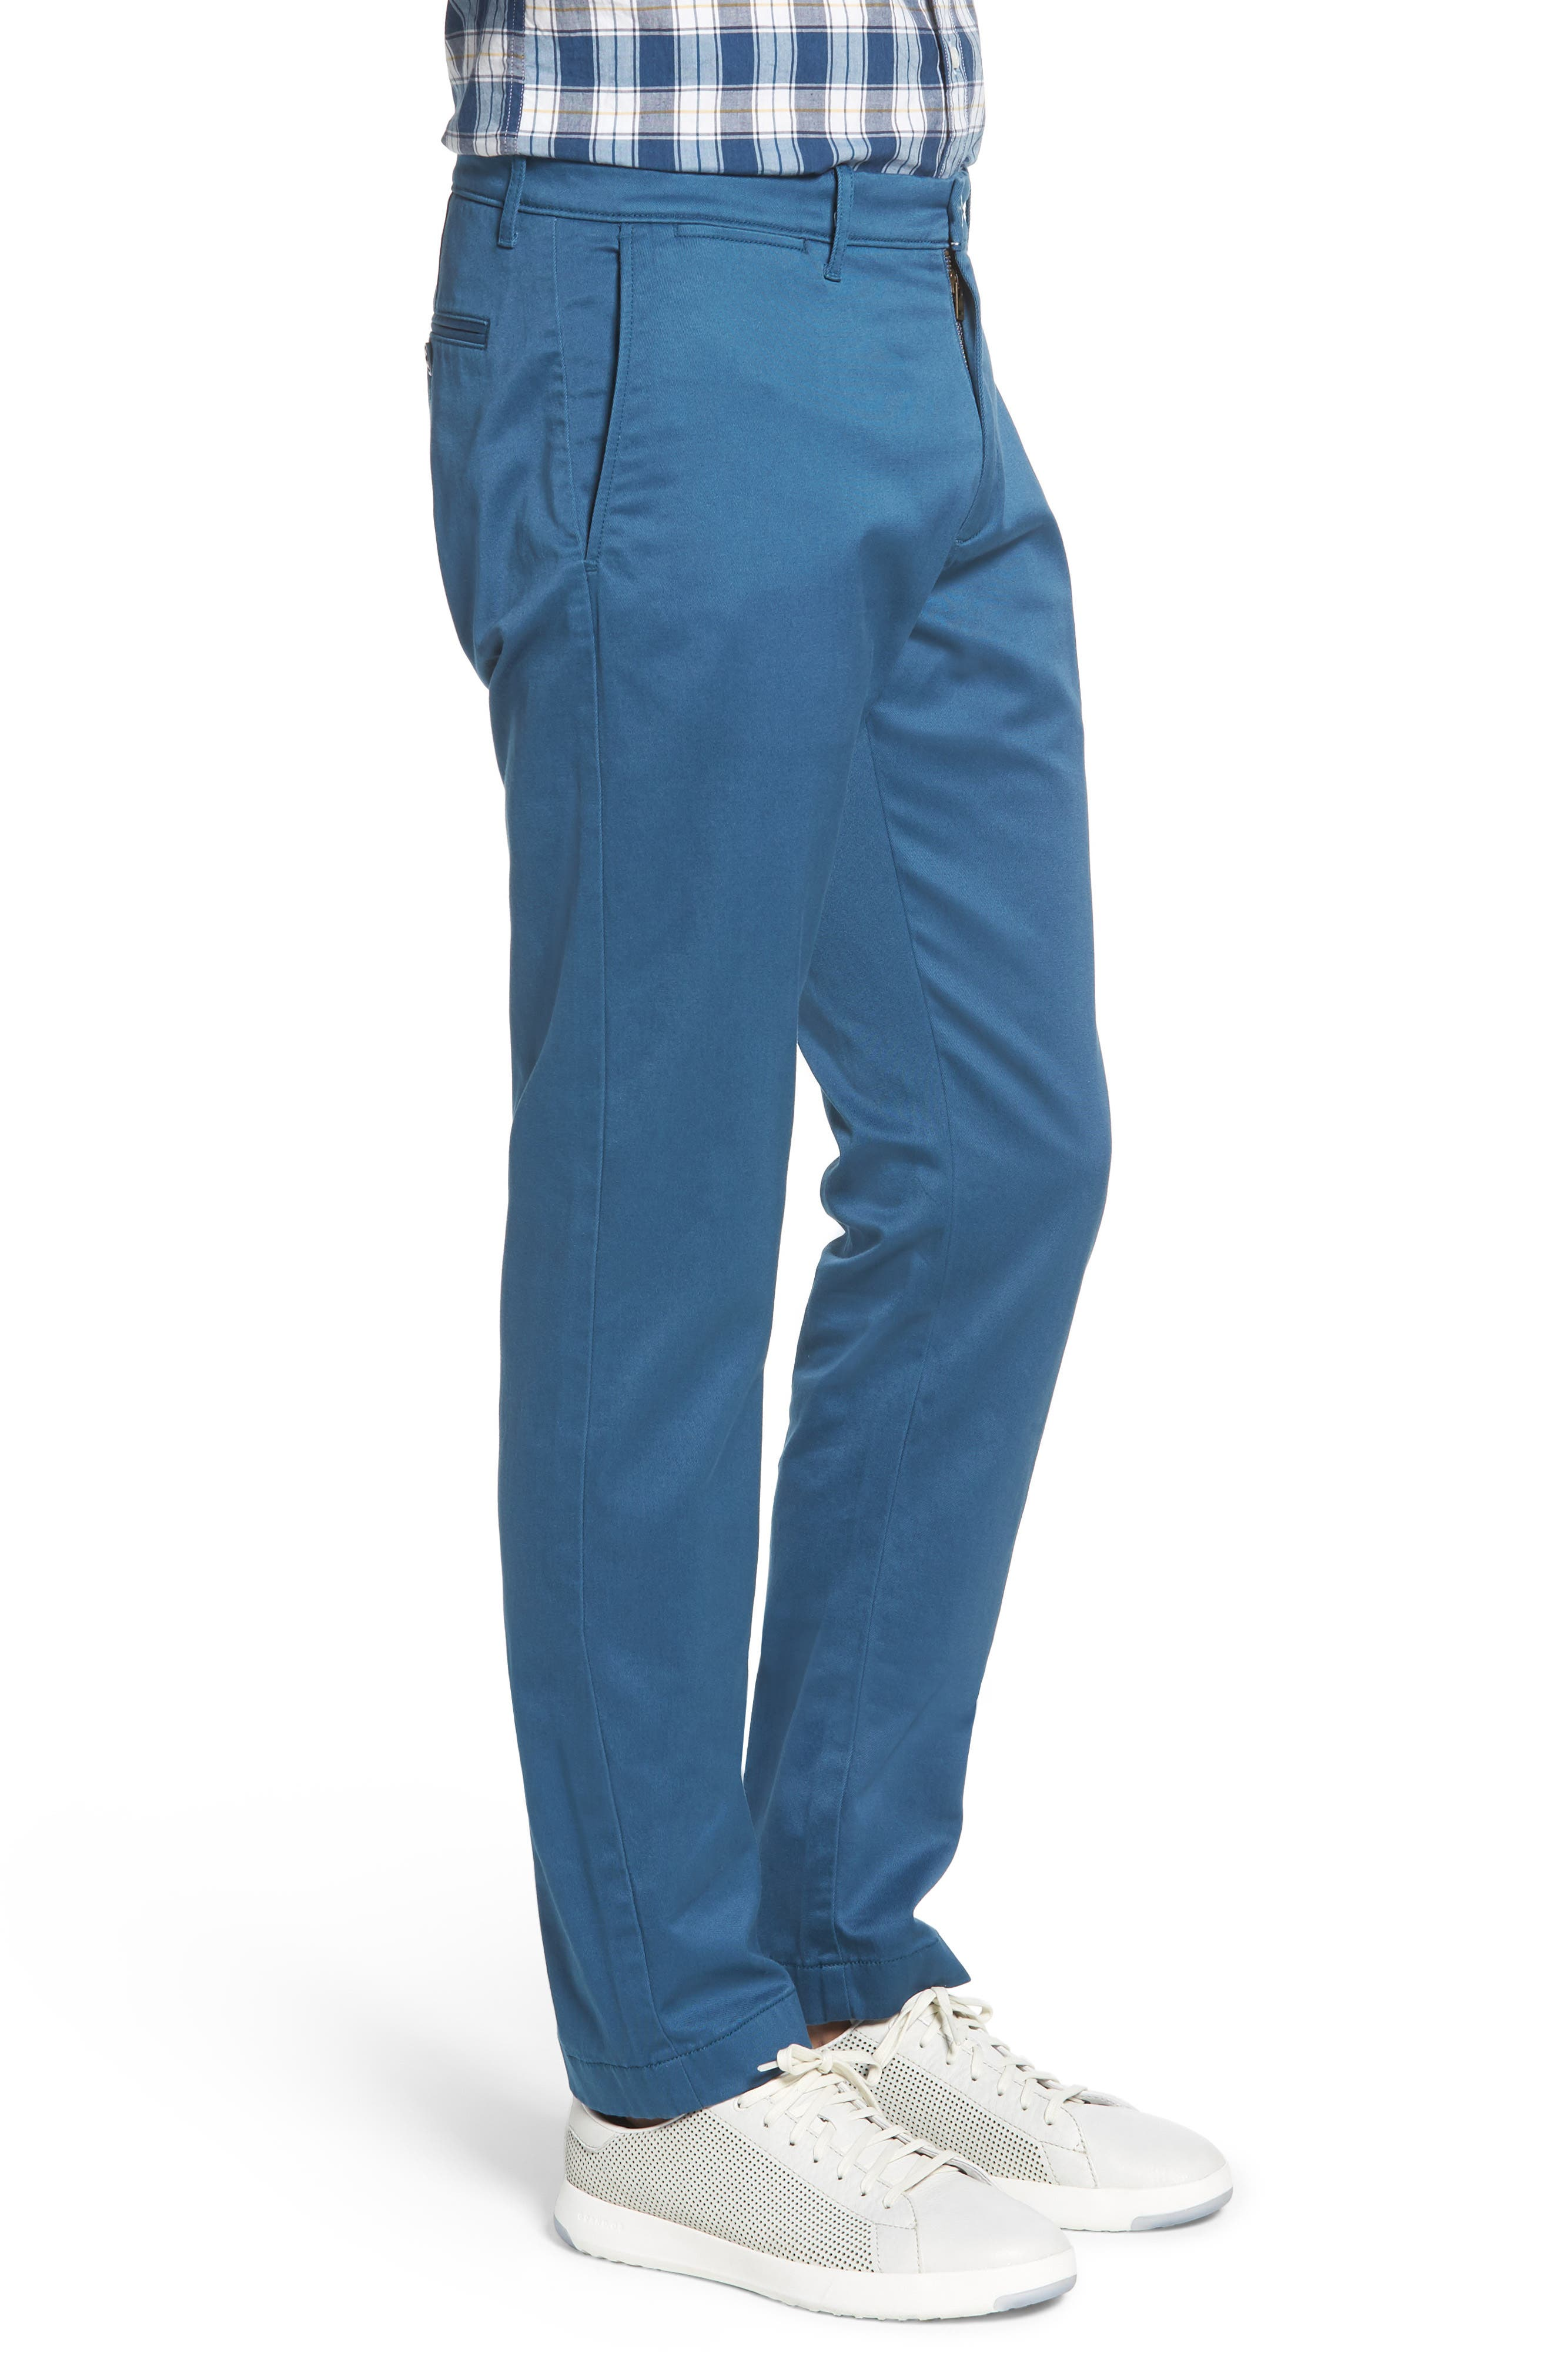 484 Slim Fit Stretch Chino Pants,                             Alternate thumbnail 32, color,